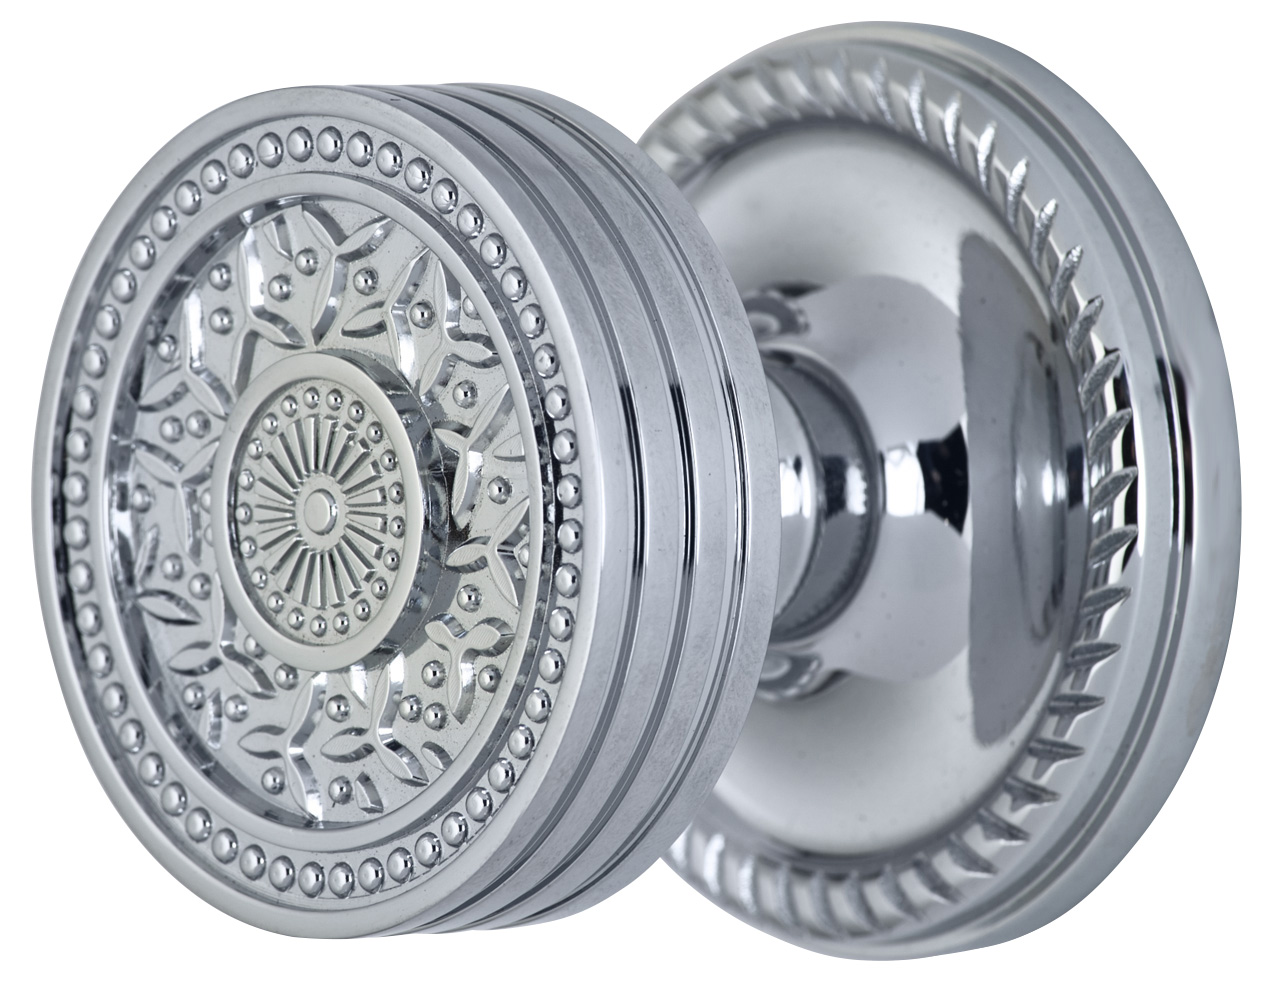 2 1/4 Inch Sunburst Petal Door Knob With Rope Rosette (Polished Chrome Finish)